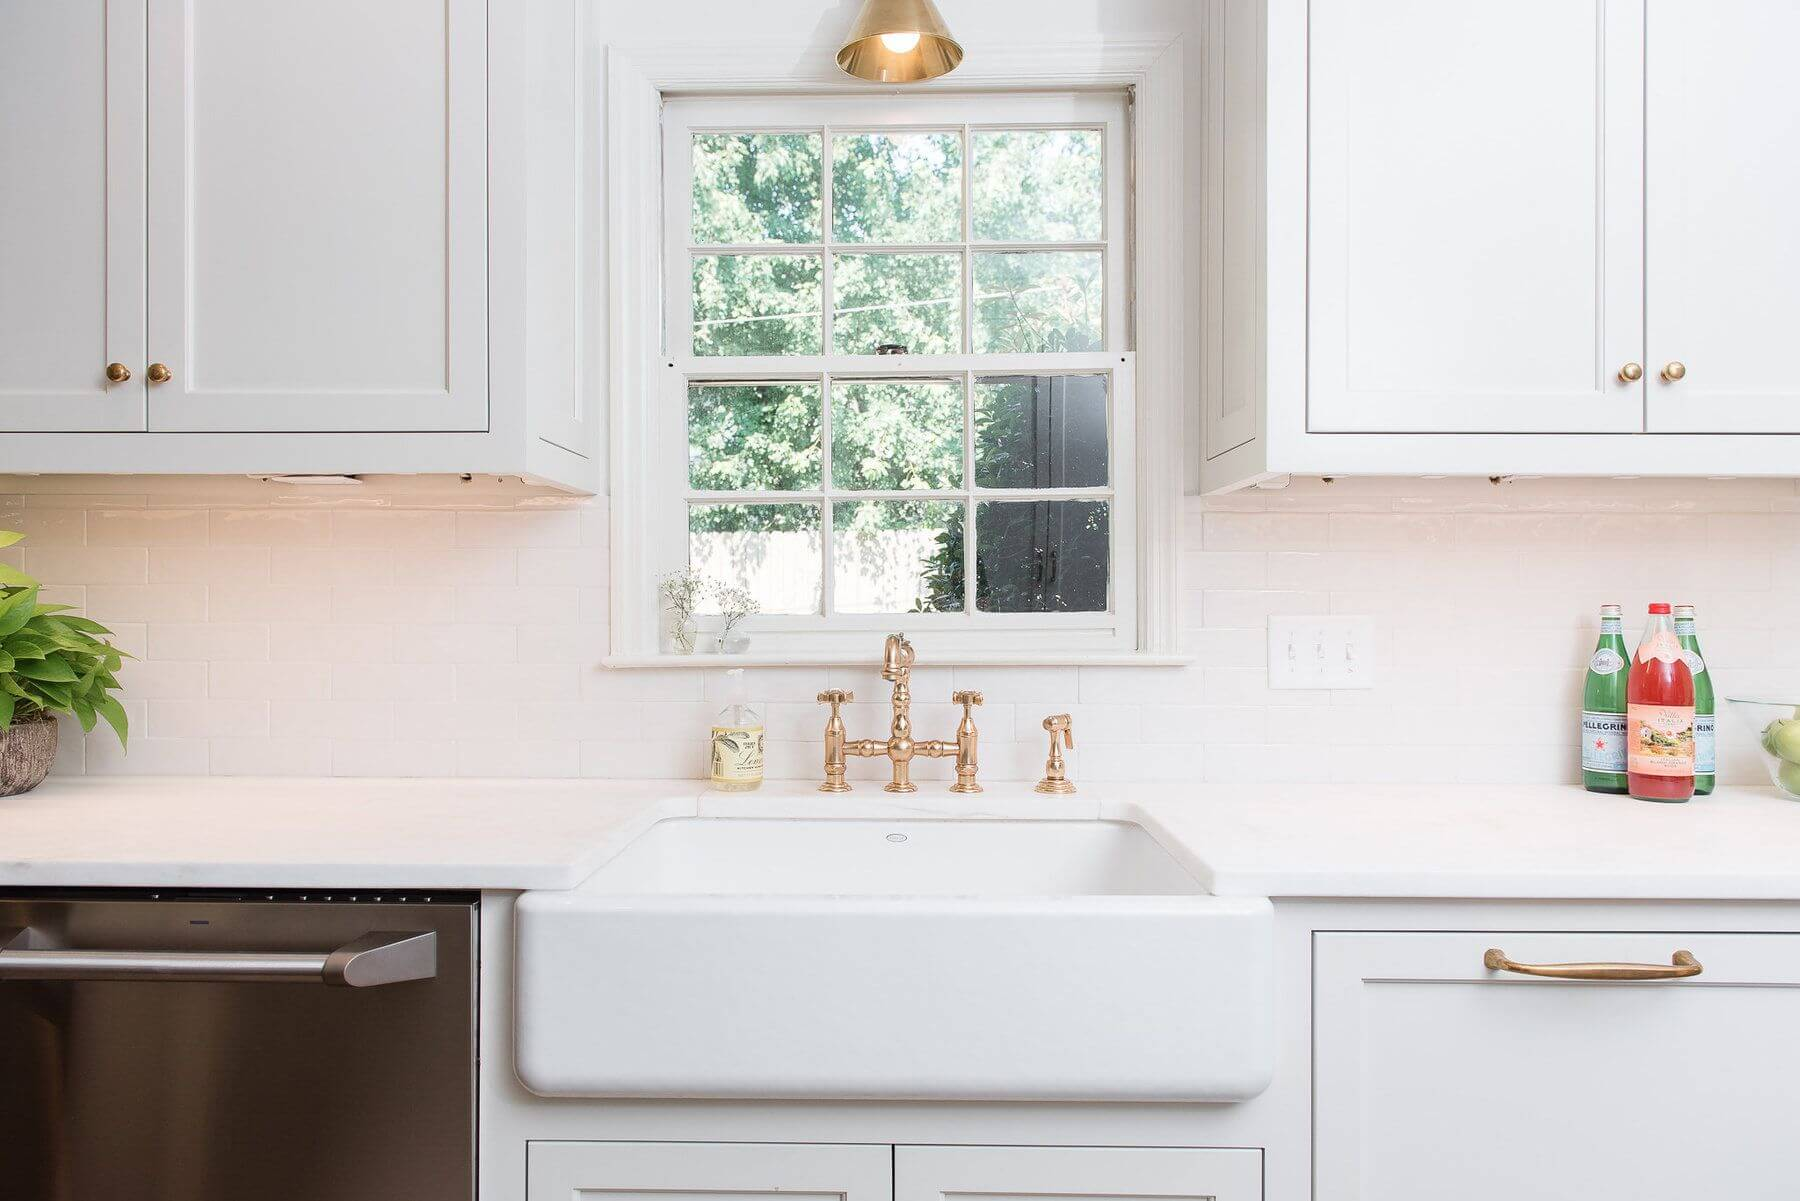 Aged brass from Architectural Heritage provides a timeless feel to the new kitchen.